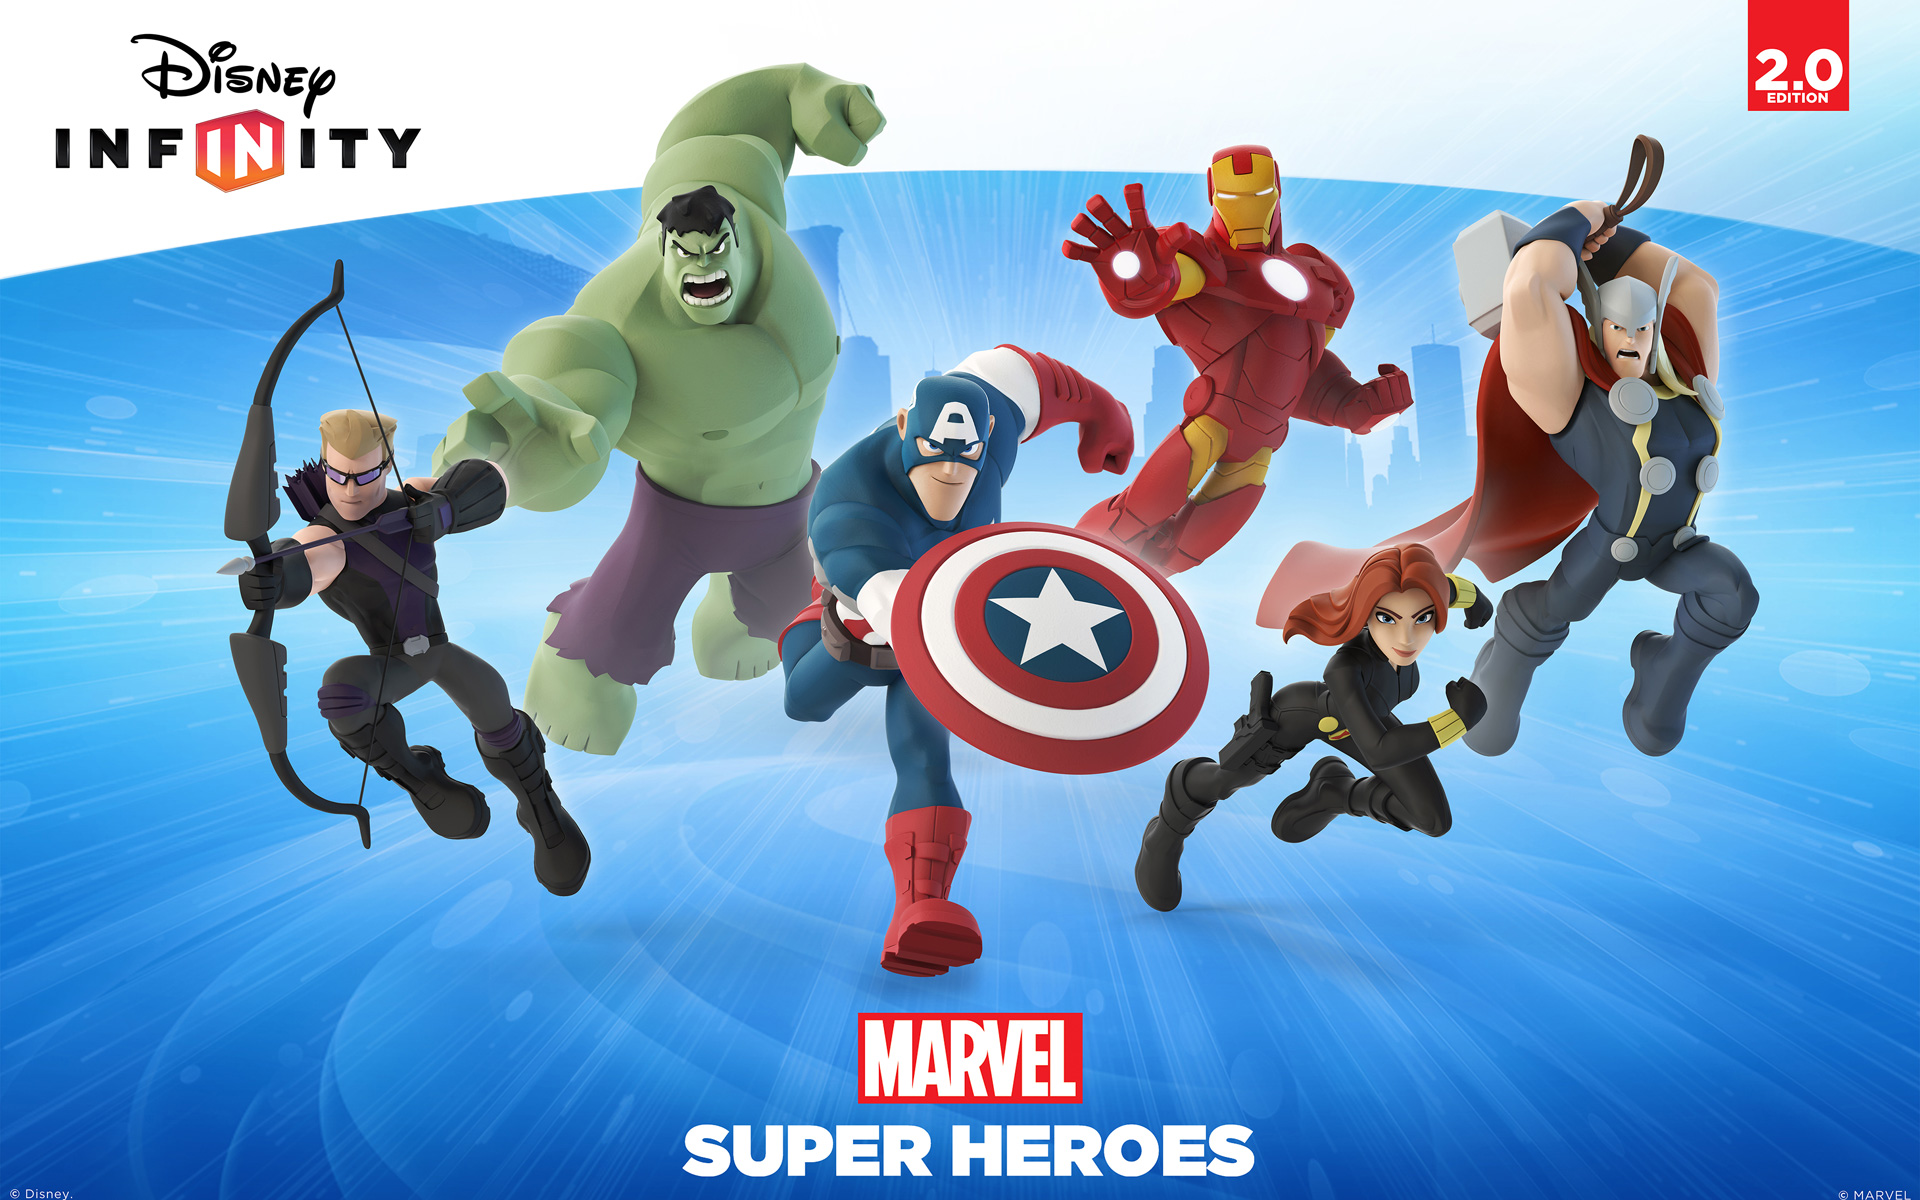 Disney Infinity Marvel Super Heroes Wallpaper   HD Wallpapers Desktop 1920x1200